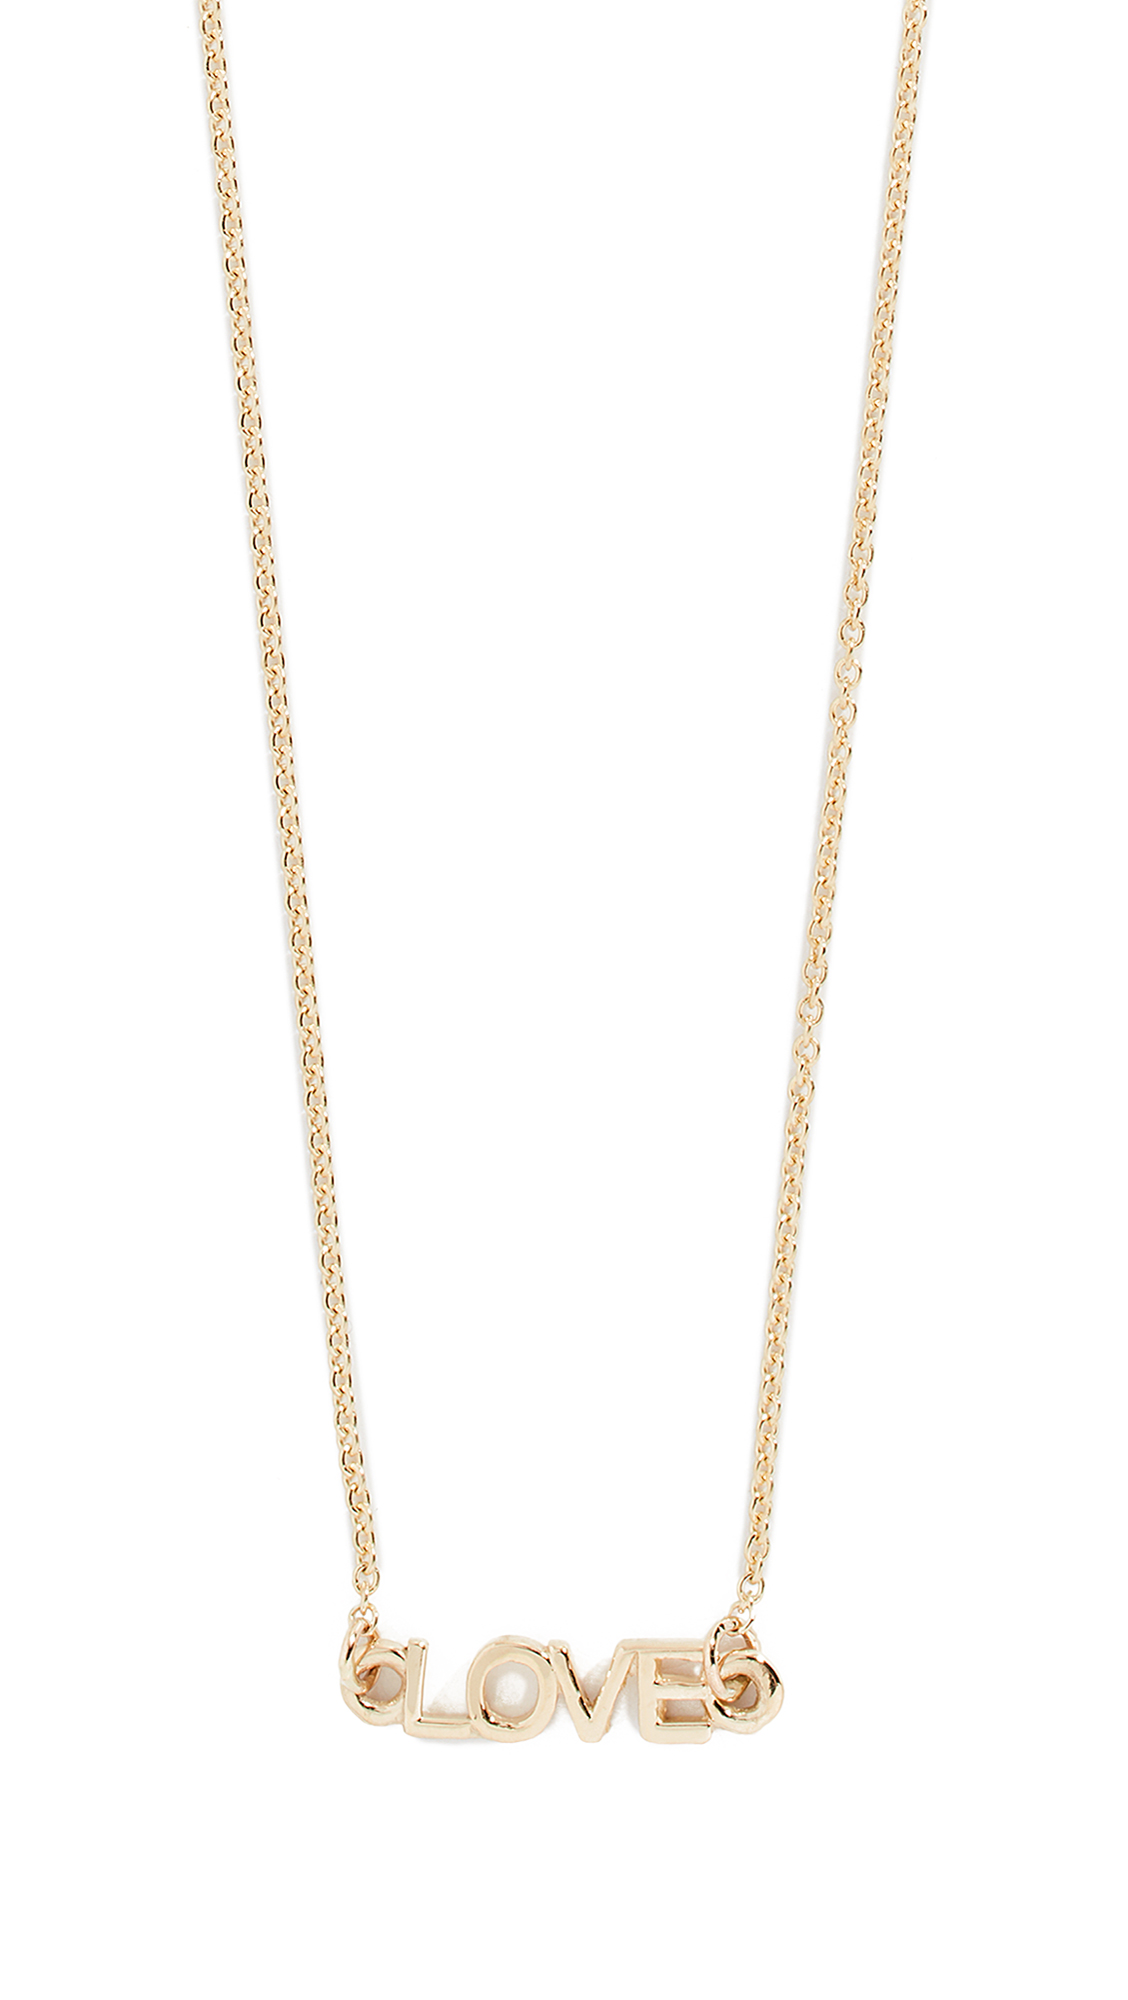 EDEN PRESLEY Love Necklace in Yellow Gold